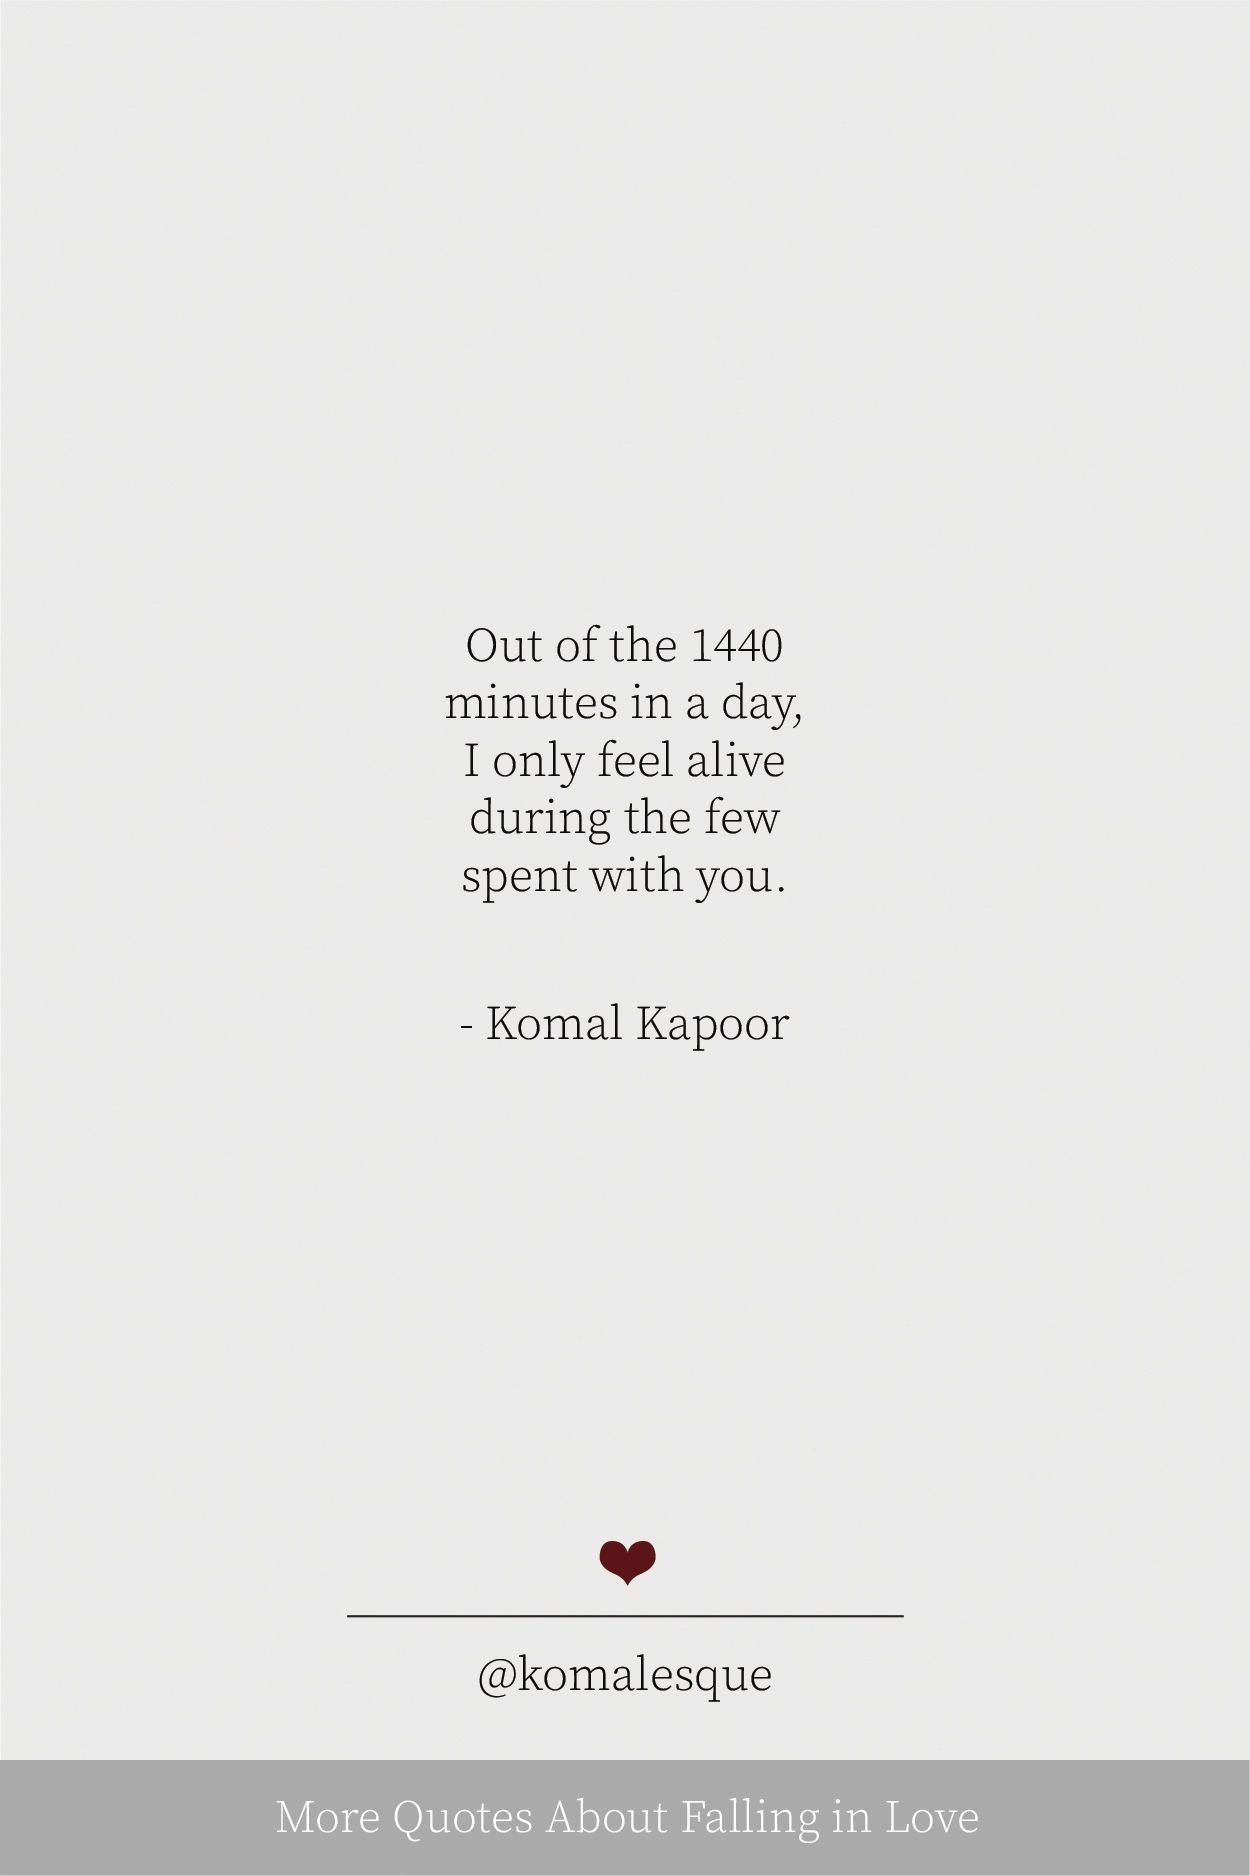 More Quotes About Falling In Love Komal Kapoor Real Love Quotes Love Words For Her Autumn Quotes